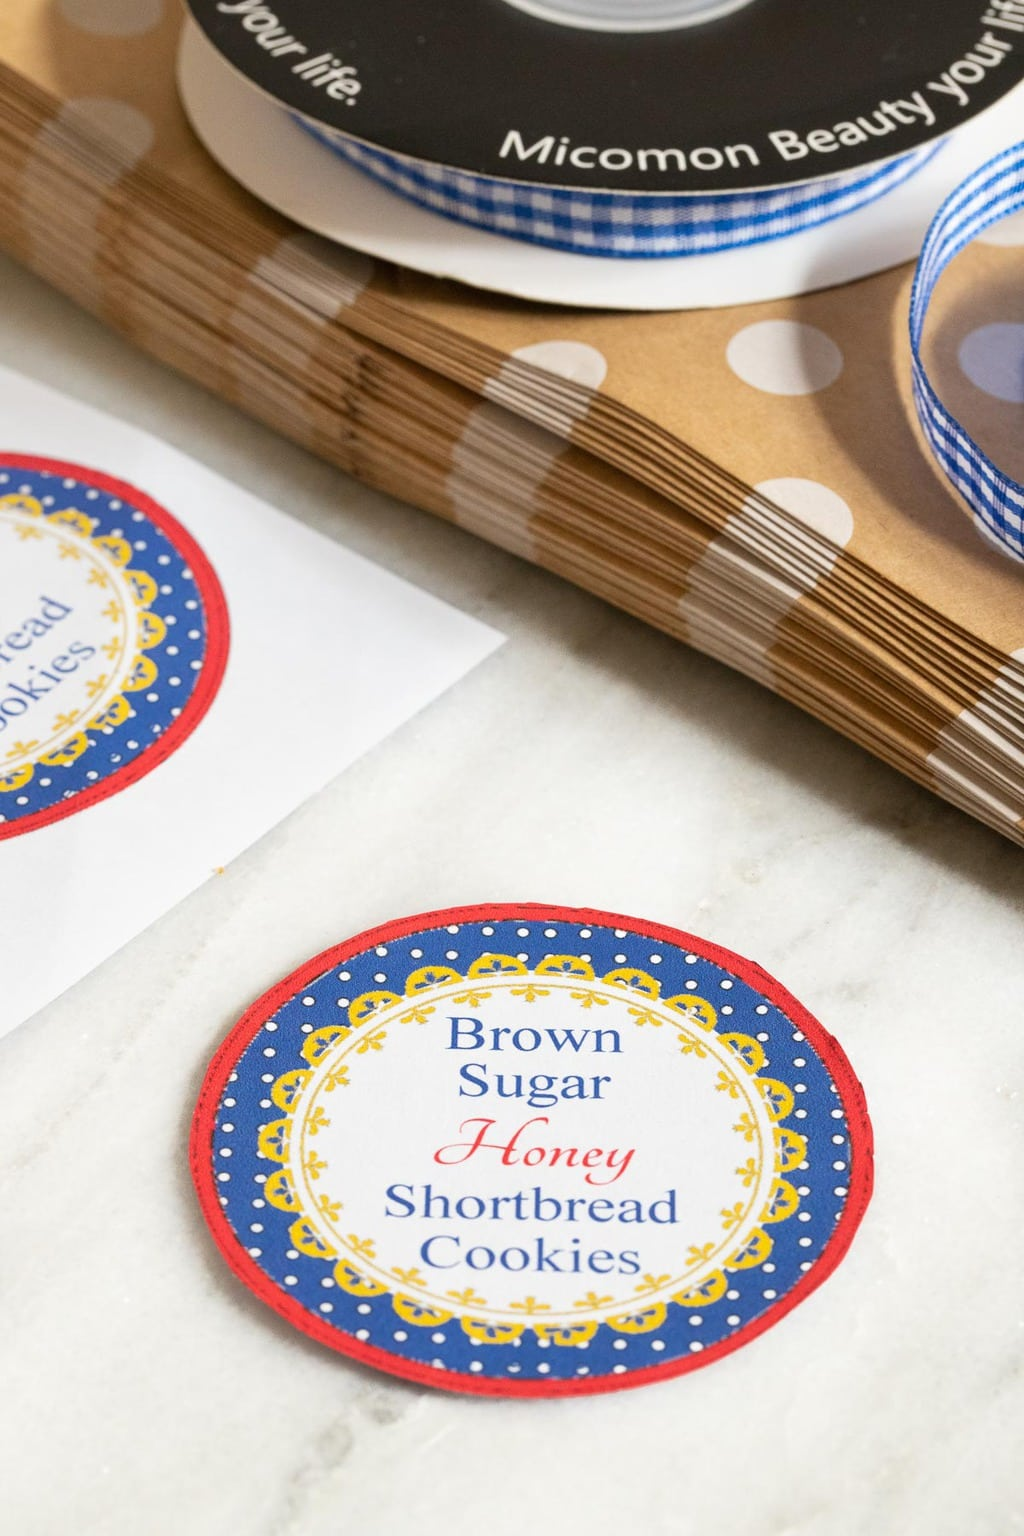 Vertical closeup photo of a Brown Sugar Honey Shortbread Cookie label for gift giving.